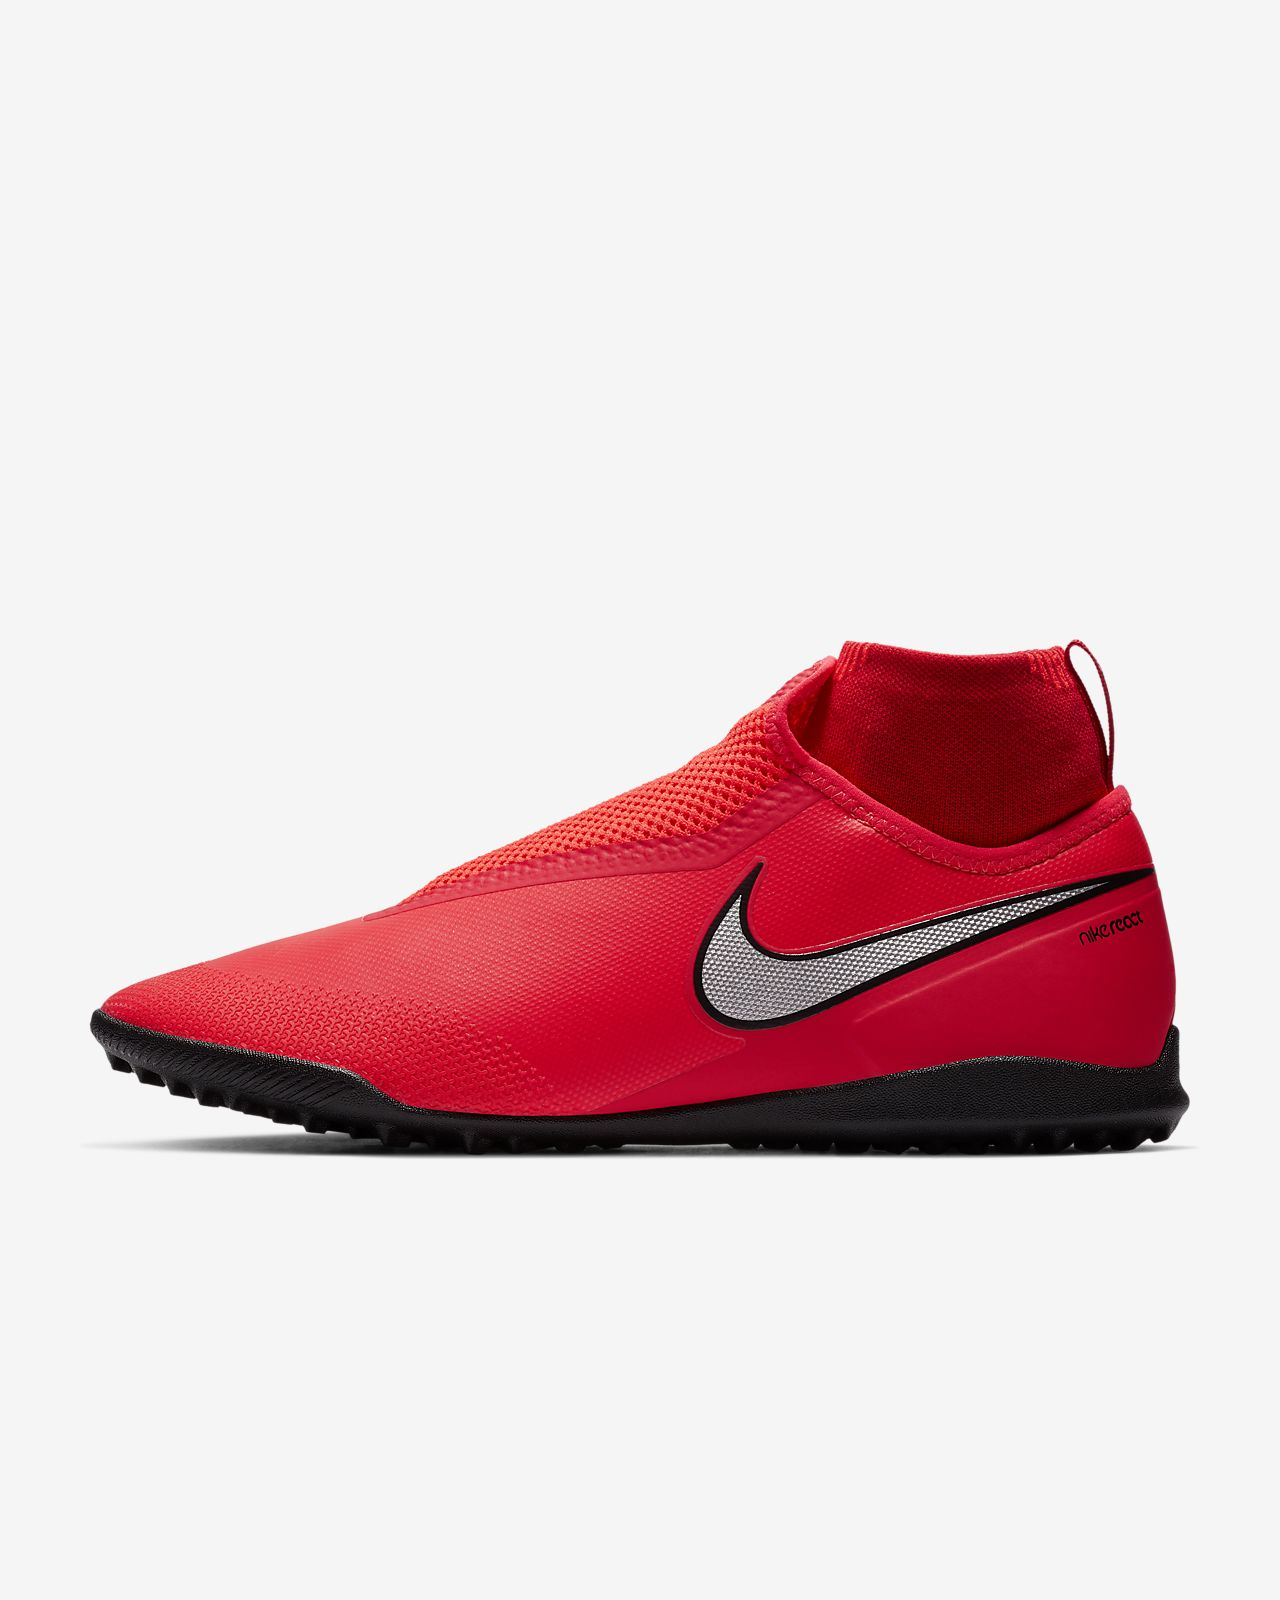 7c139679afc7 ... Nike React PhantomVSN Pro Dynamic Fit Game Over TF Turf Football Shoe